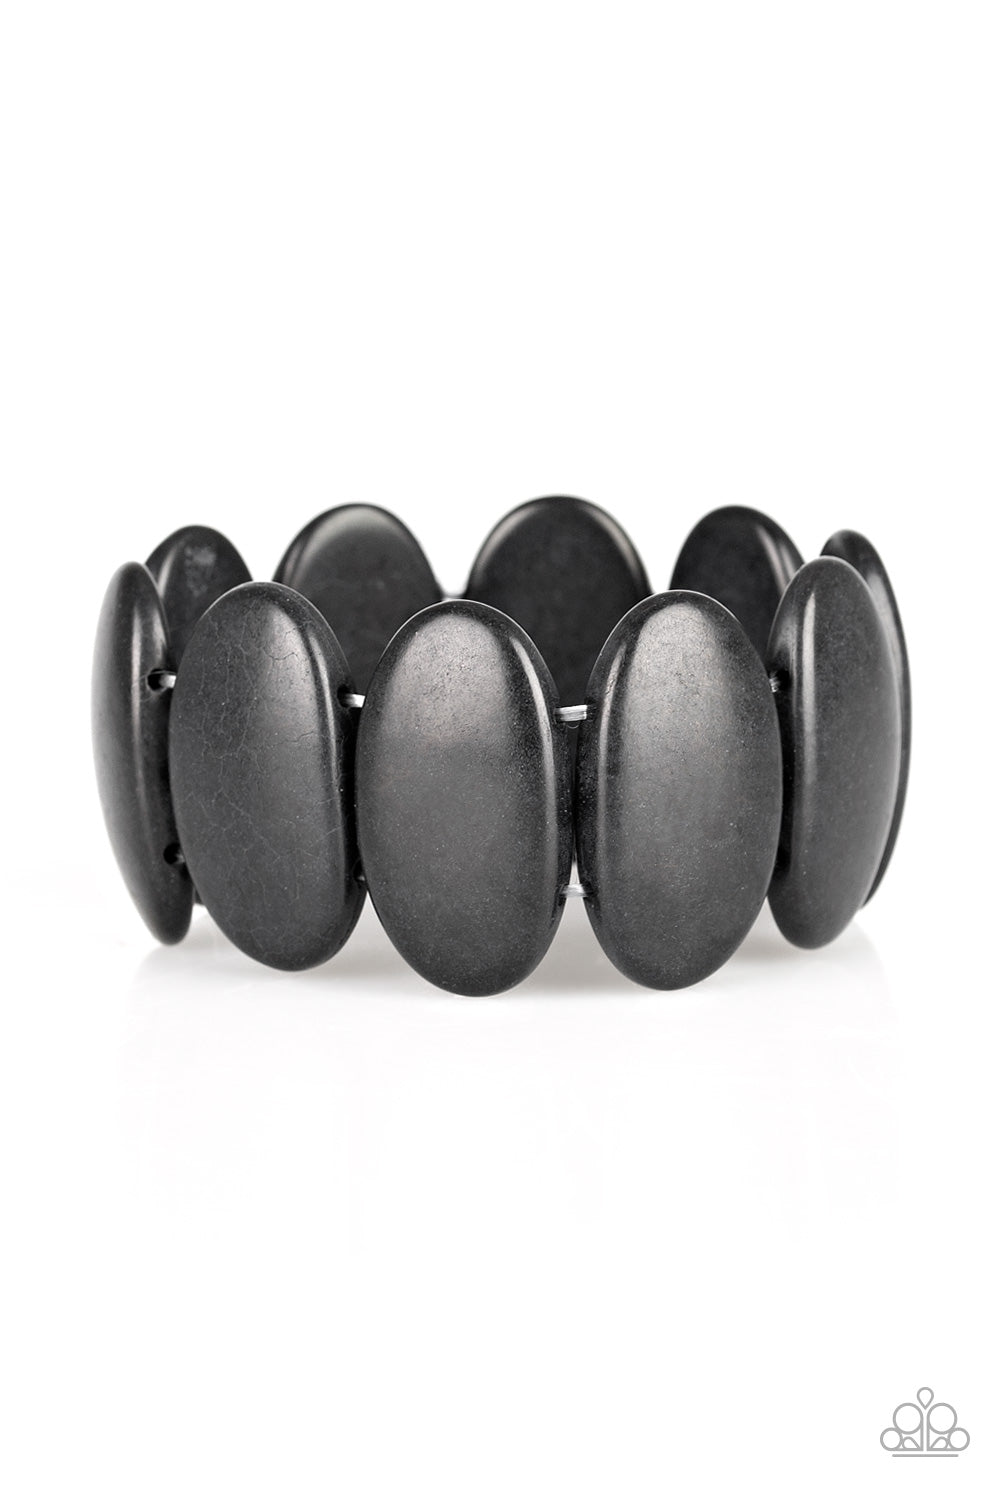 Paparazzi Accessories - Dramatically Nomadic - Black Bracelet - JMJ Jewelry Collection